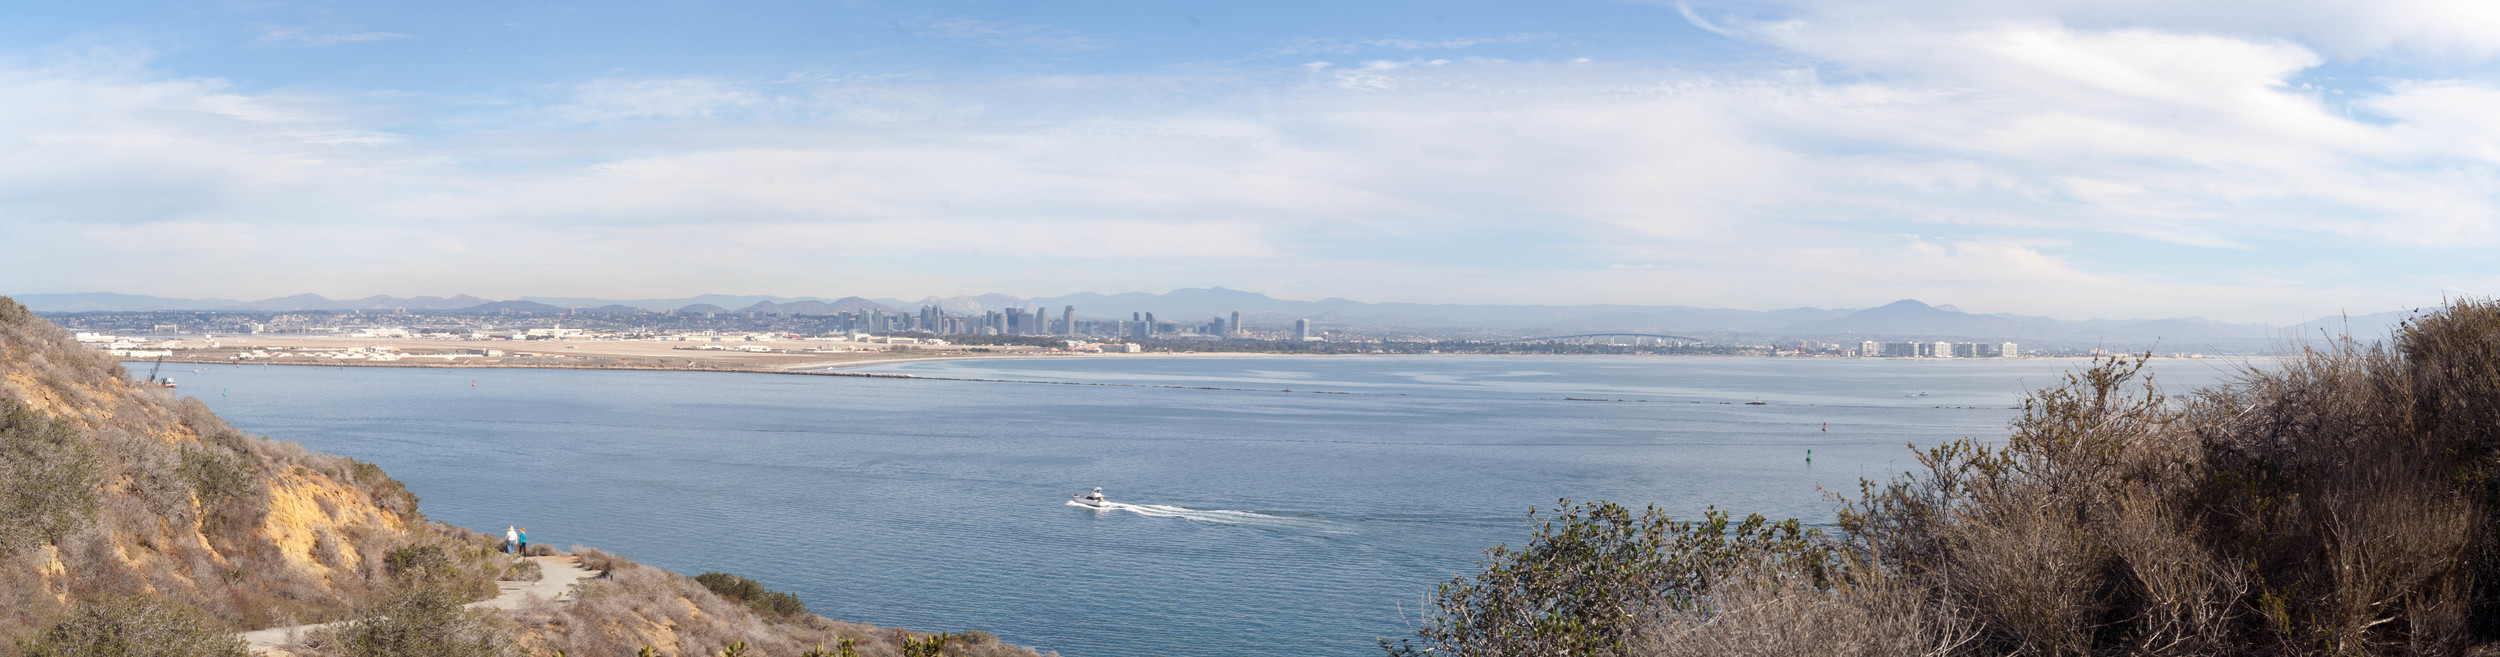 San Diego and Coronado from Cabrillo Monument